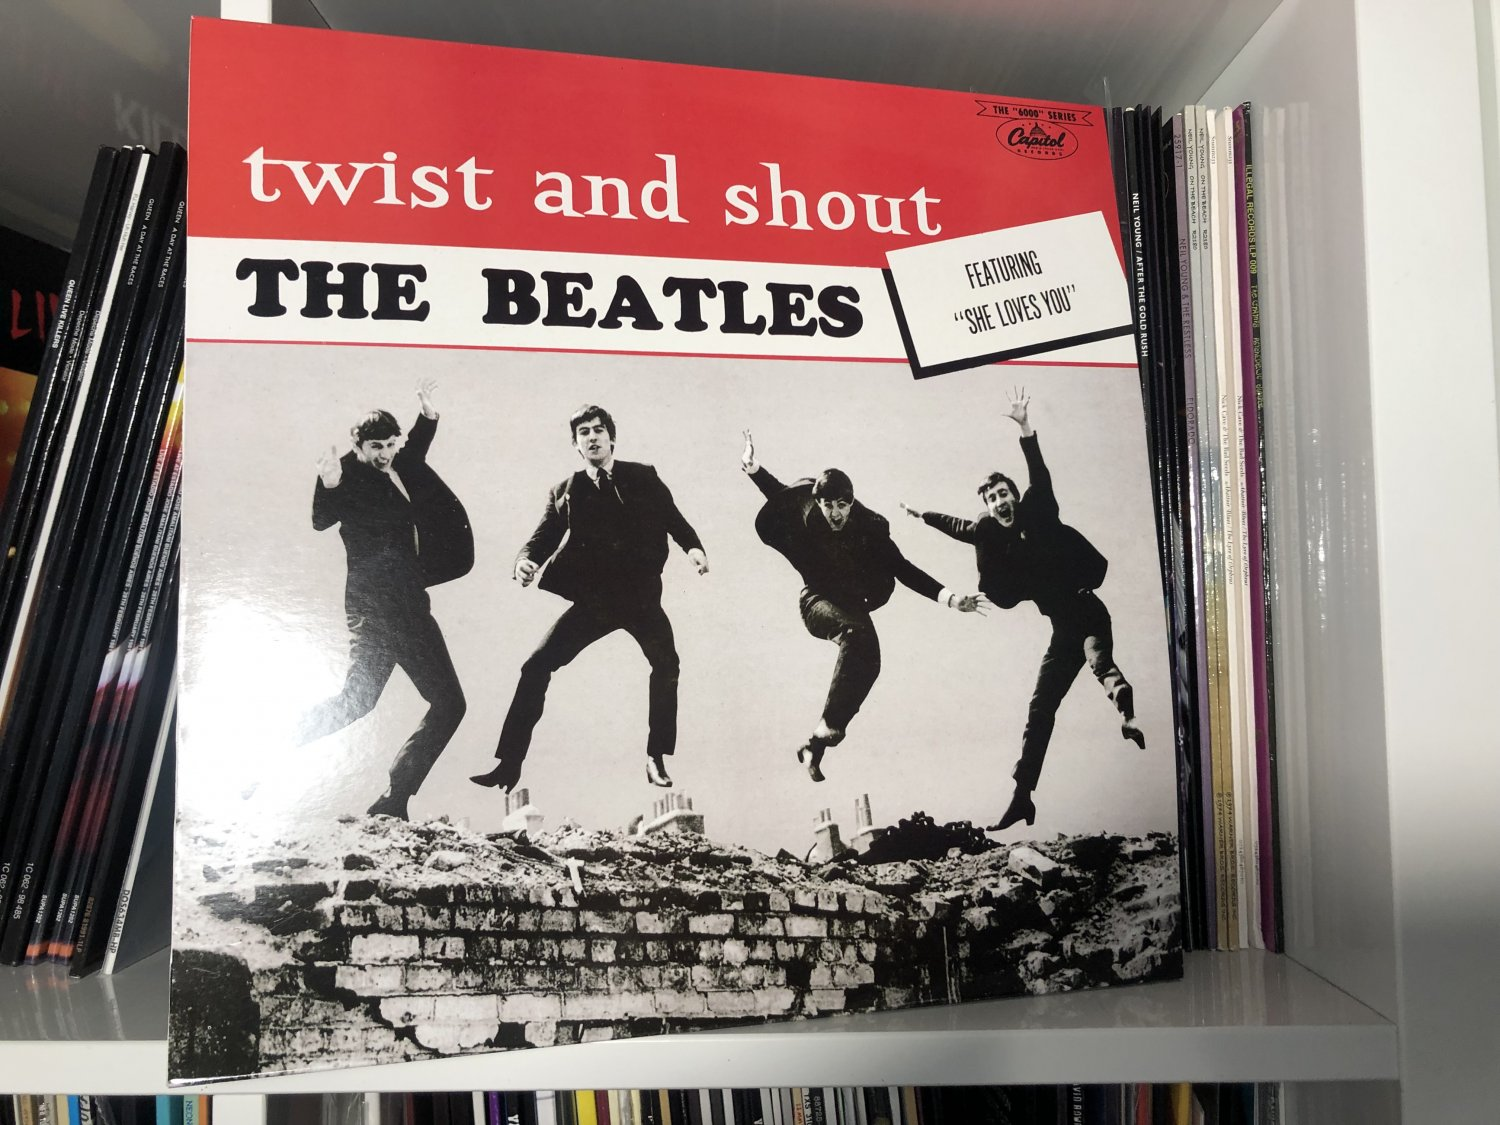 THE BEATLES LP twist and shout